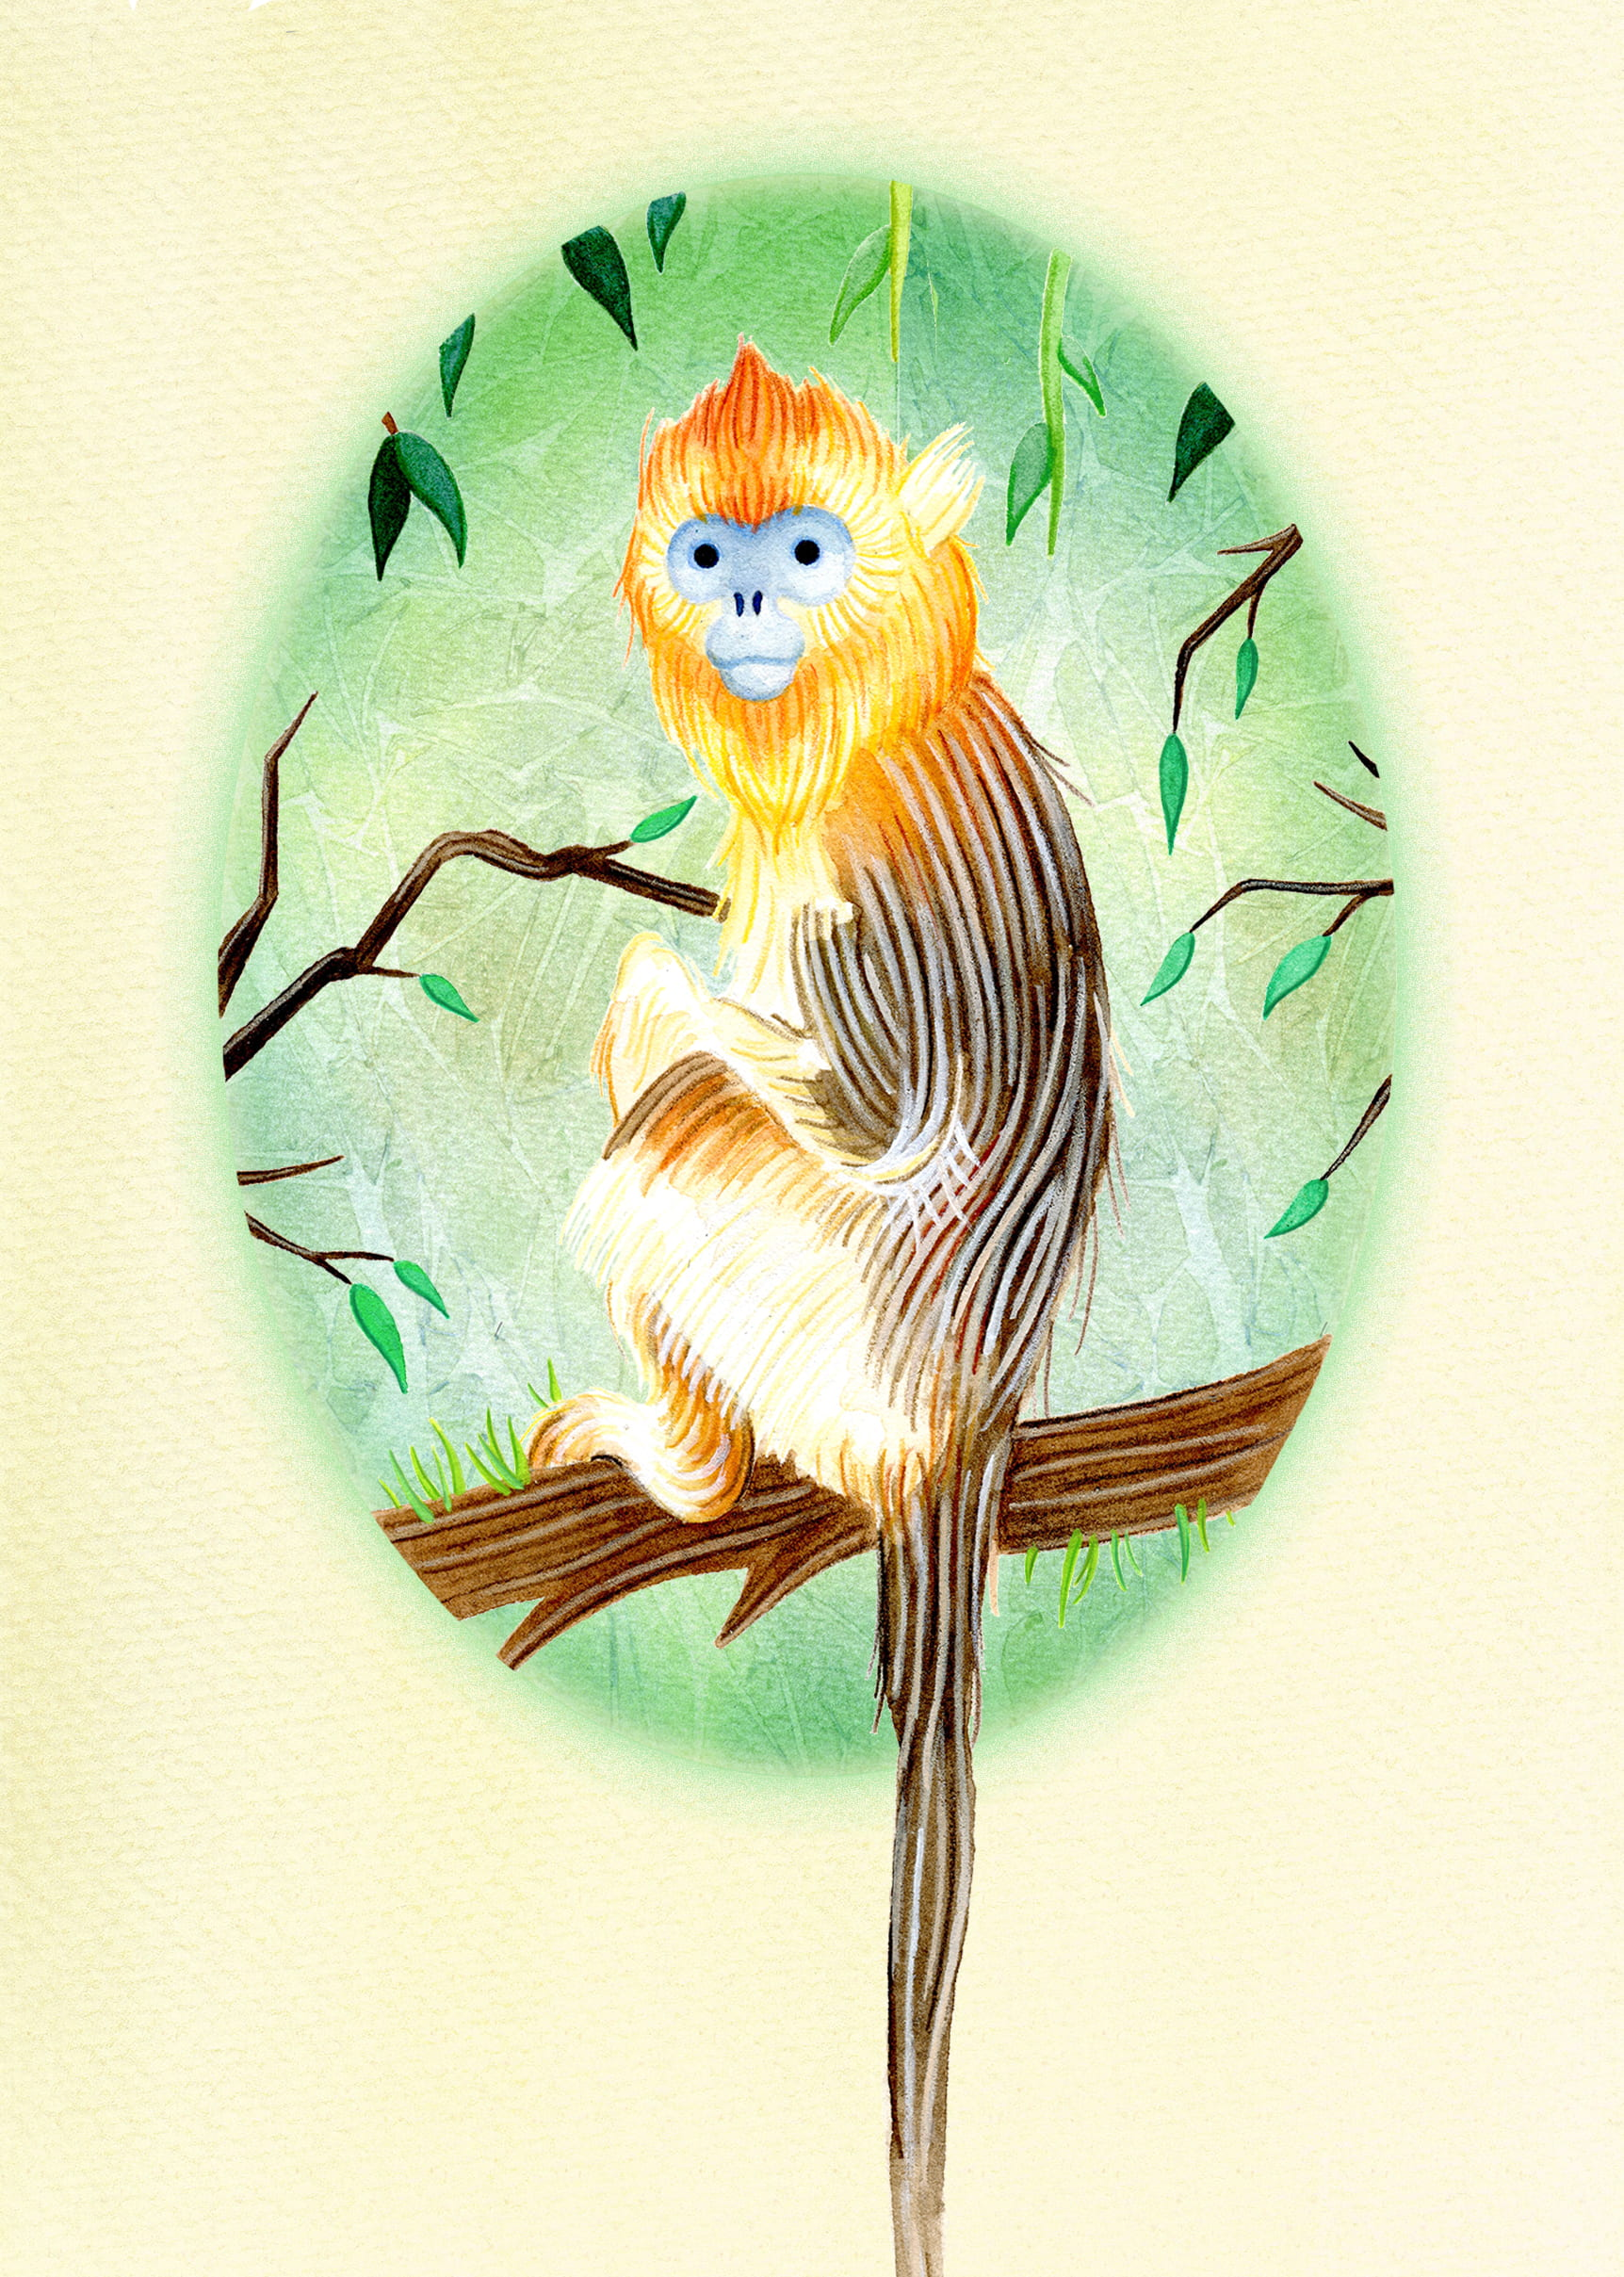 Painting of a Golden Snub Nosed Monkey, sitting on a tree branch.